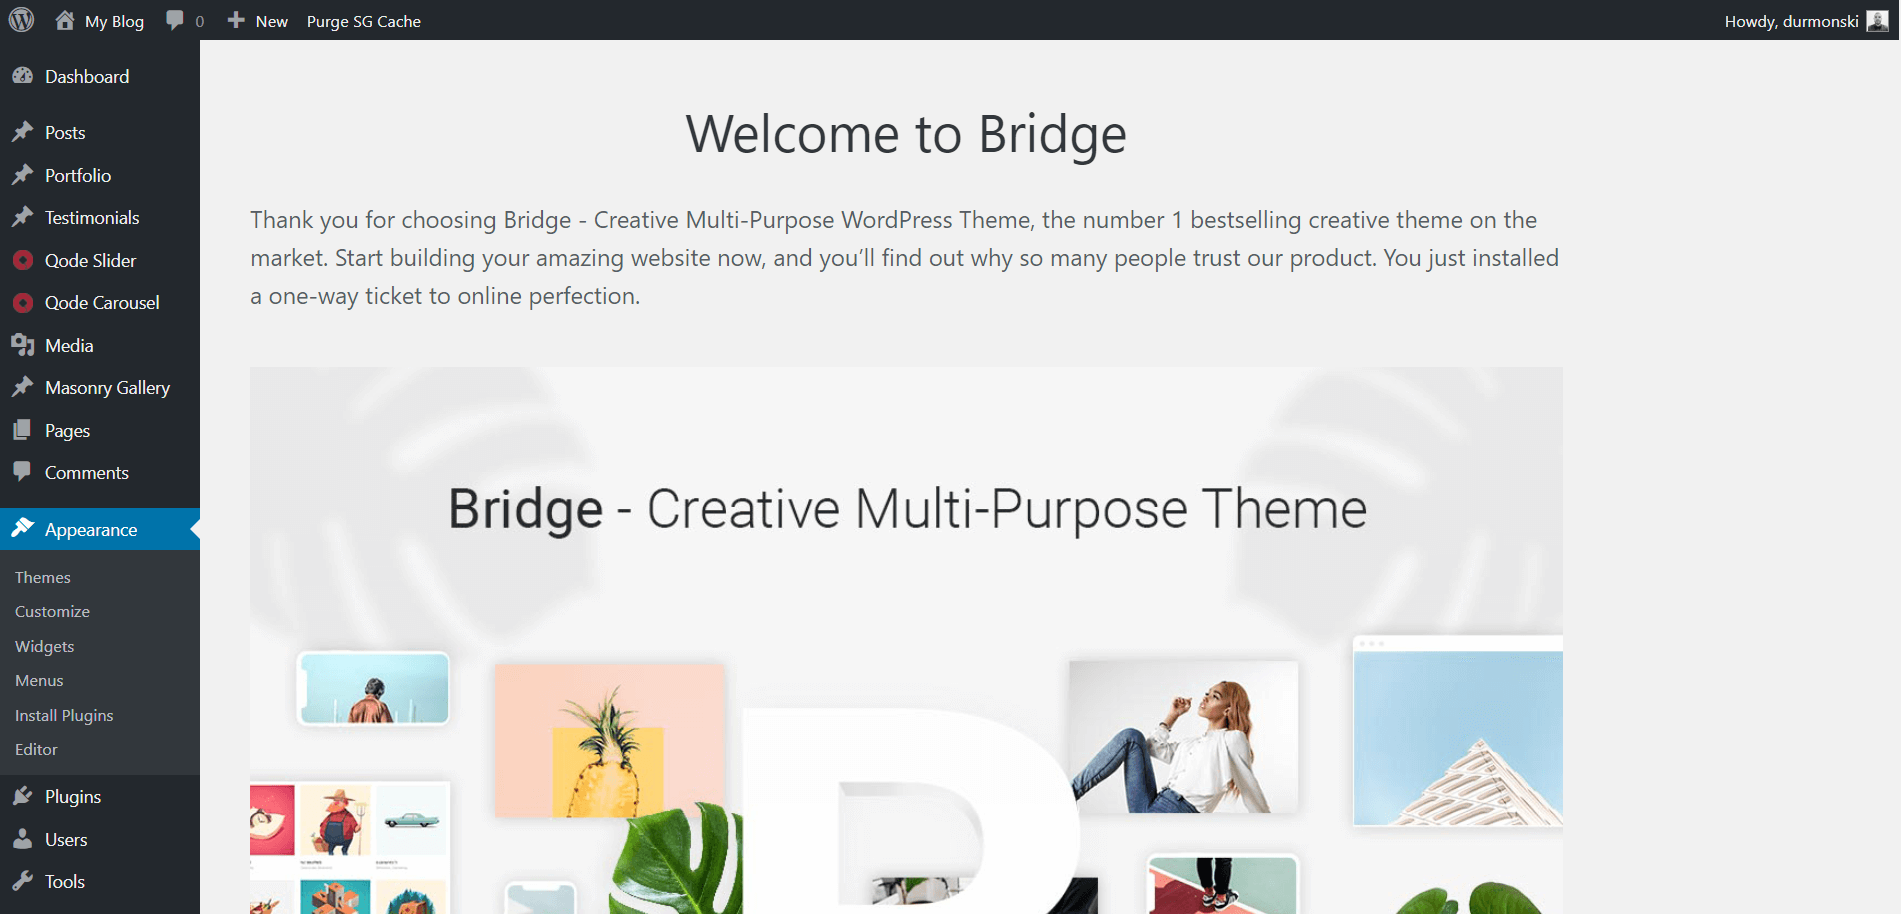 Review of the WordPress theme Bridge 2